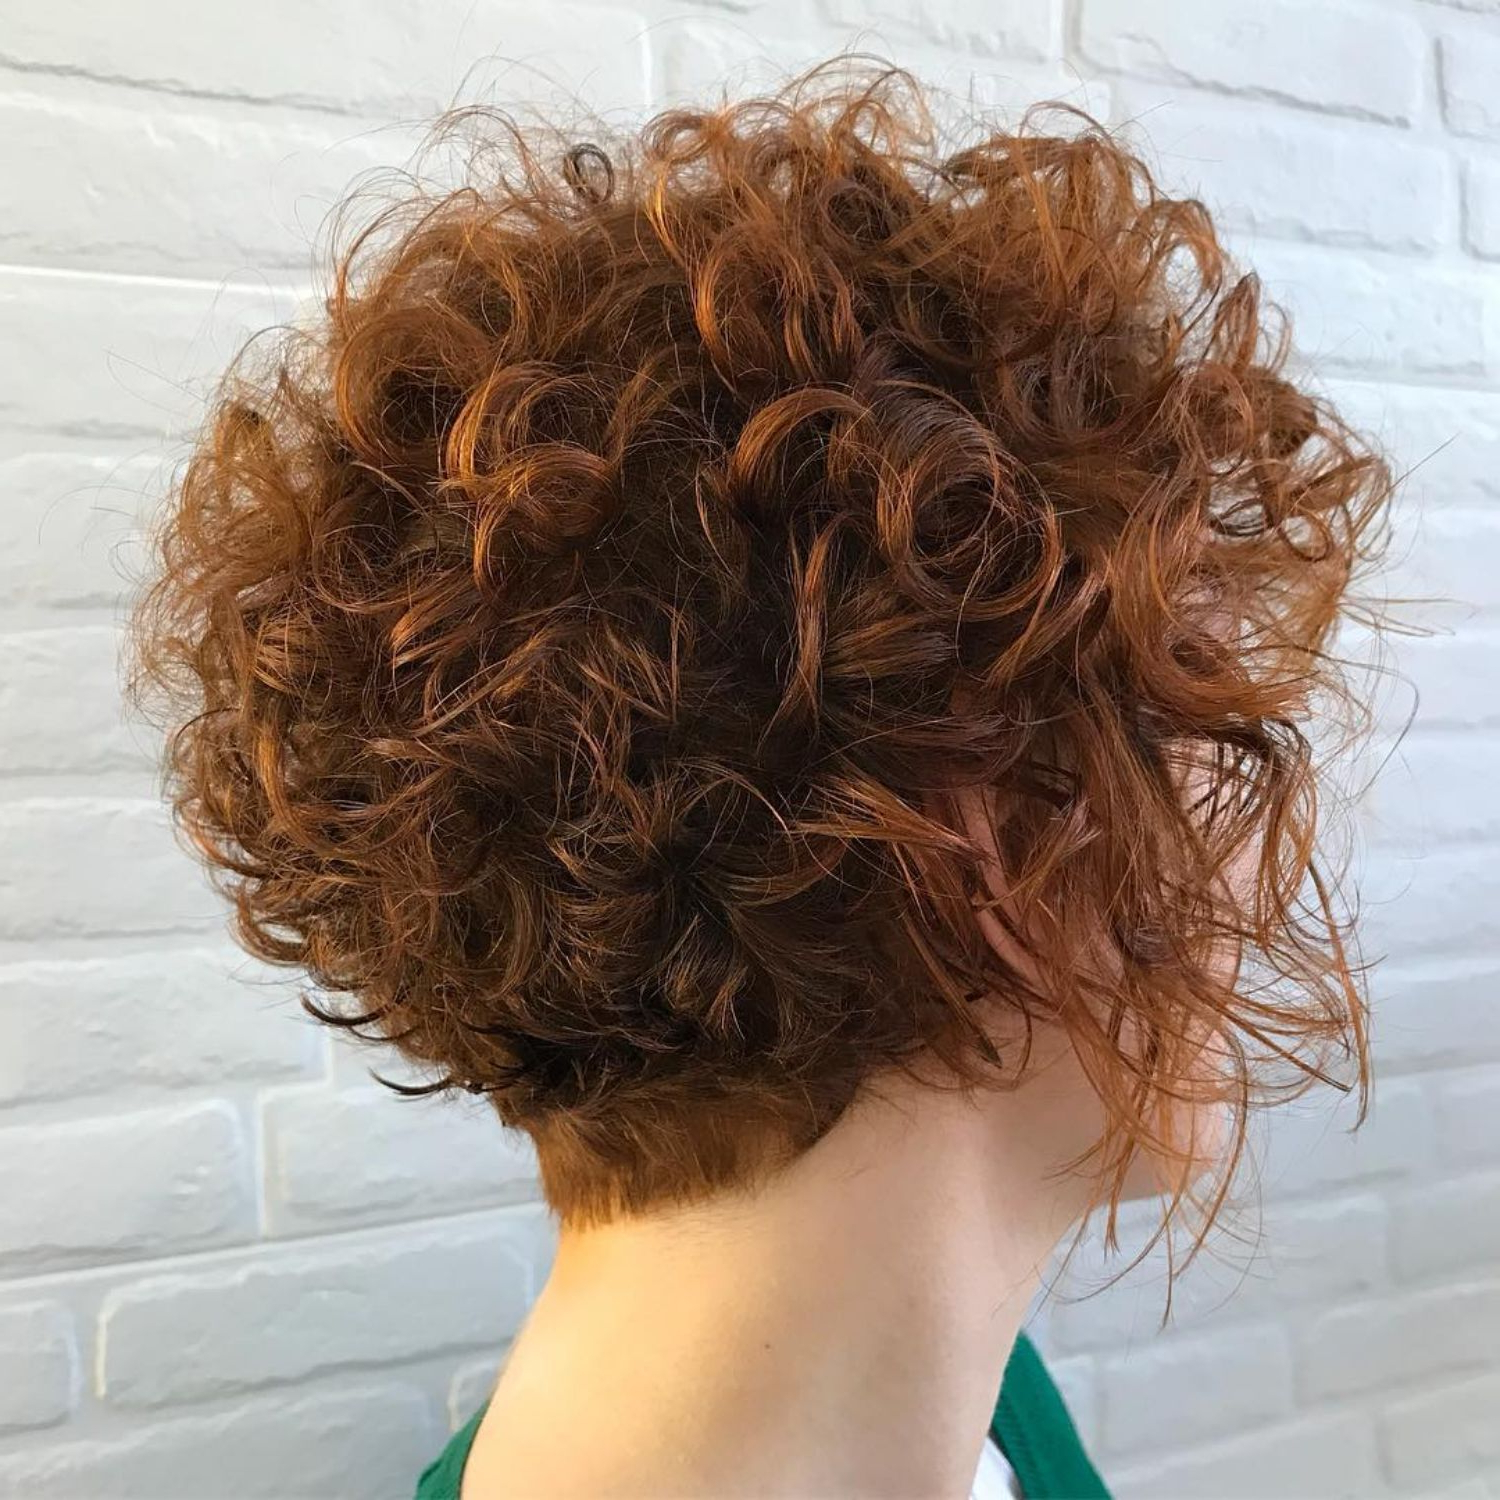 60 Most Delightful Short Wavy Hairstyles In 2018 | Hair Ideas With Tapered Brown Pixie Hairstyles With Ginger Curls (Gallery 4 of 25)